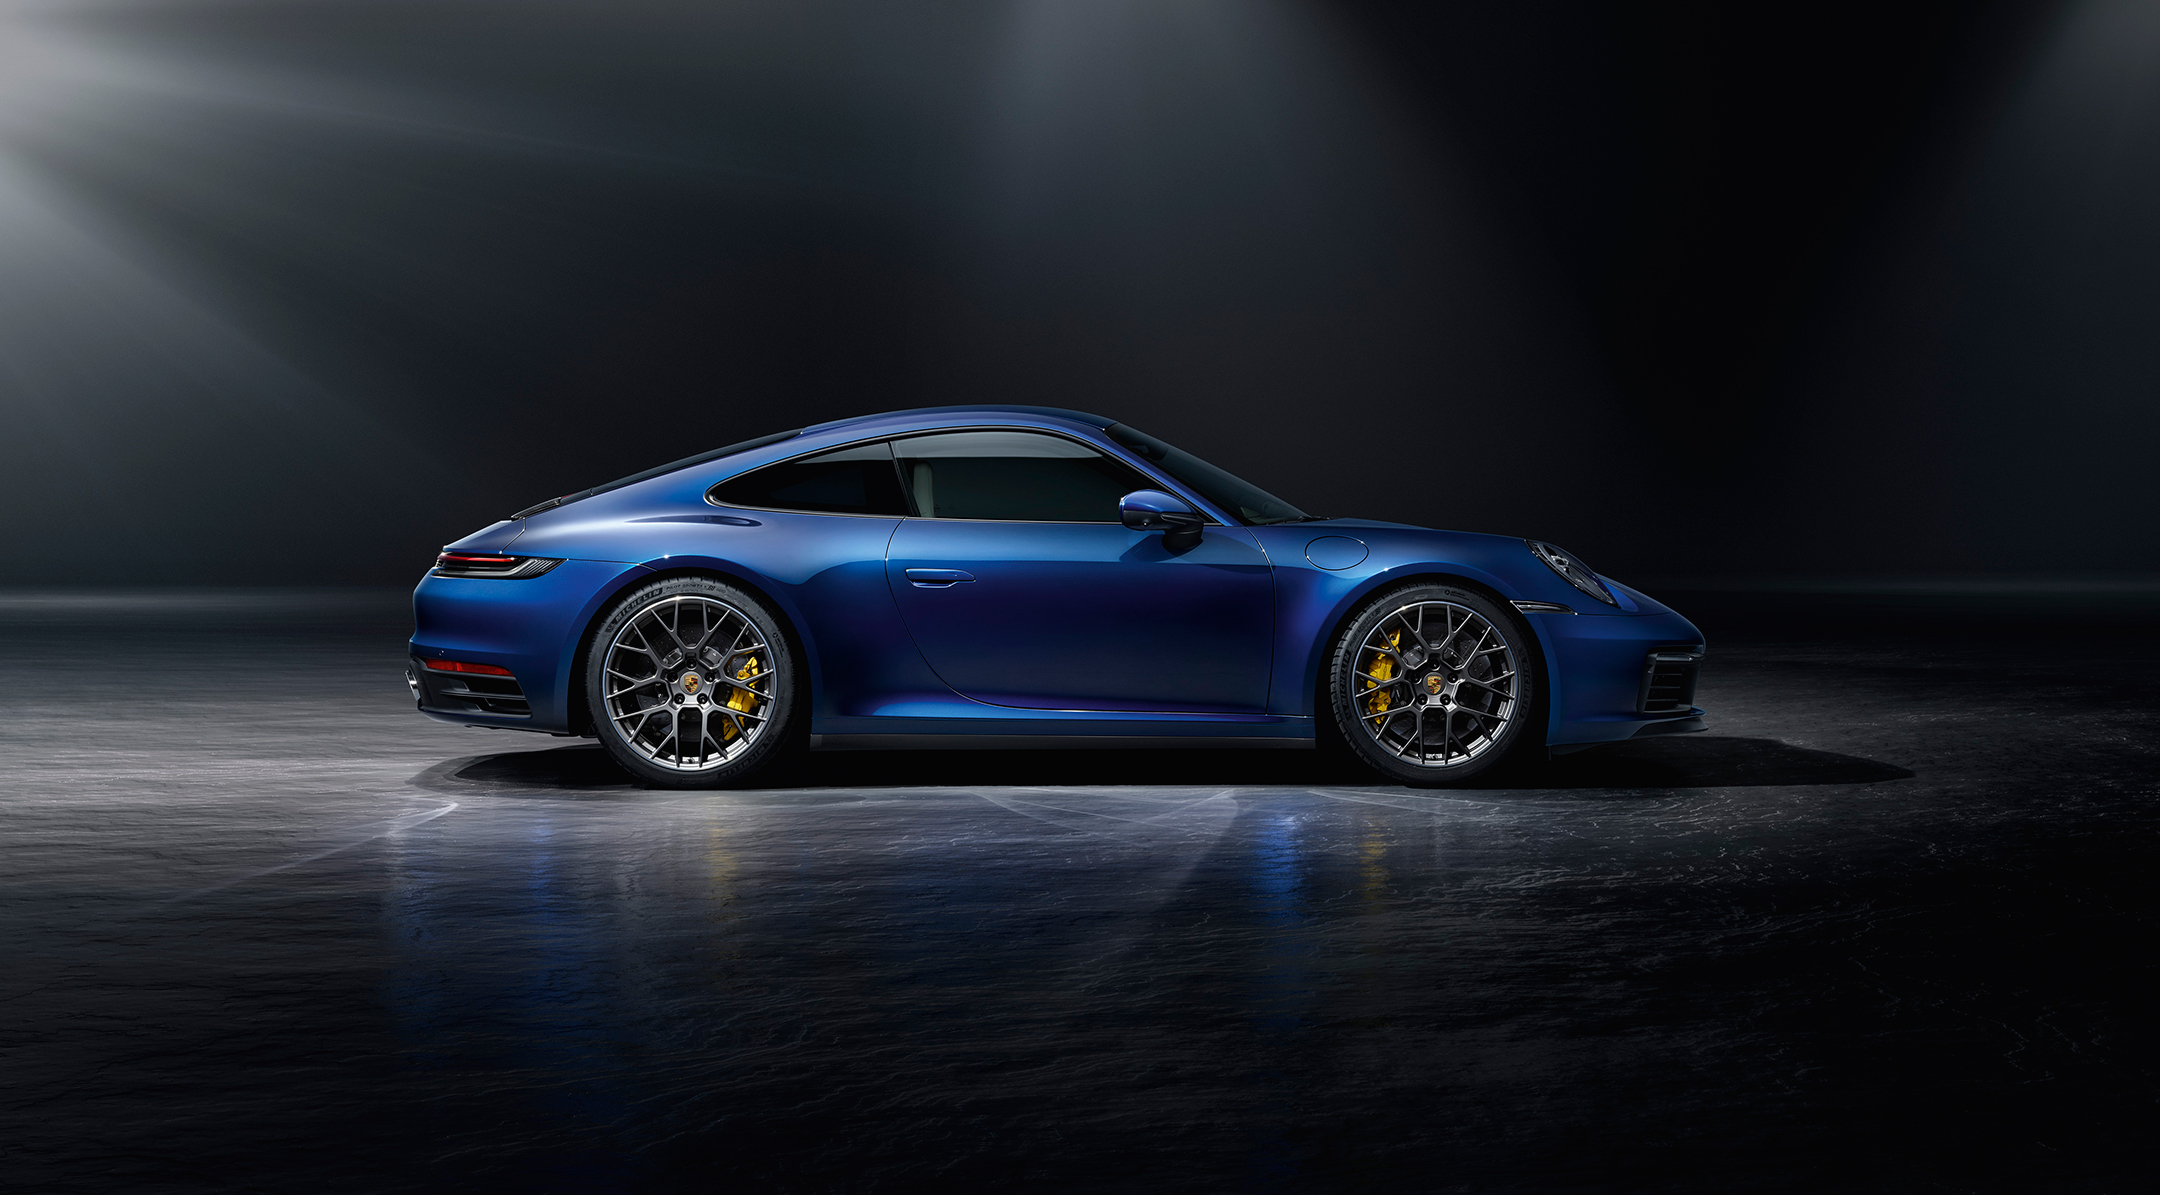 Porsche 911 type 992 Carrera4S - 2018 - side-face / profil